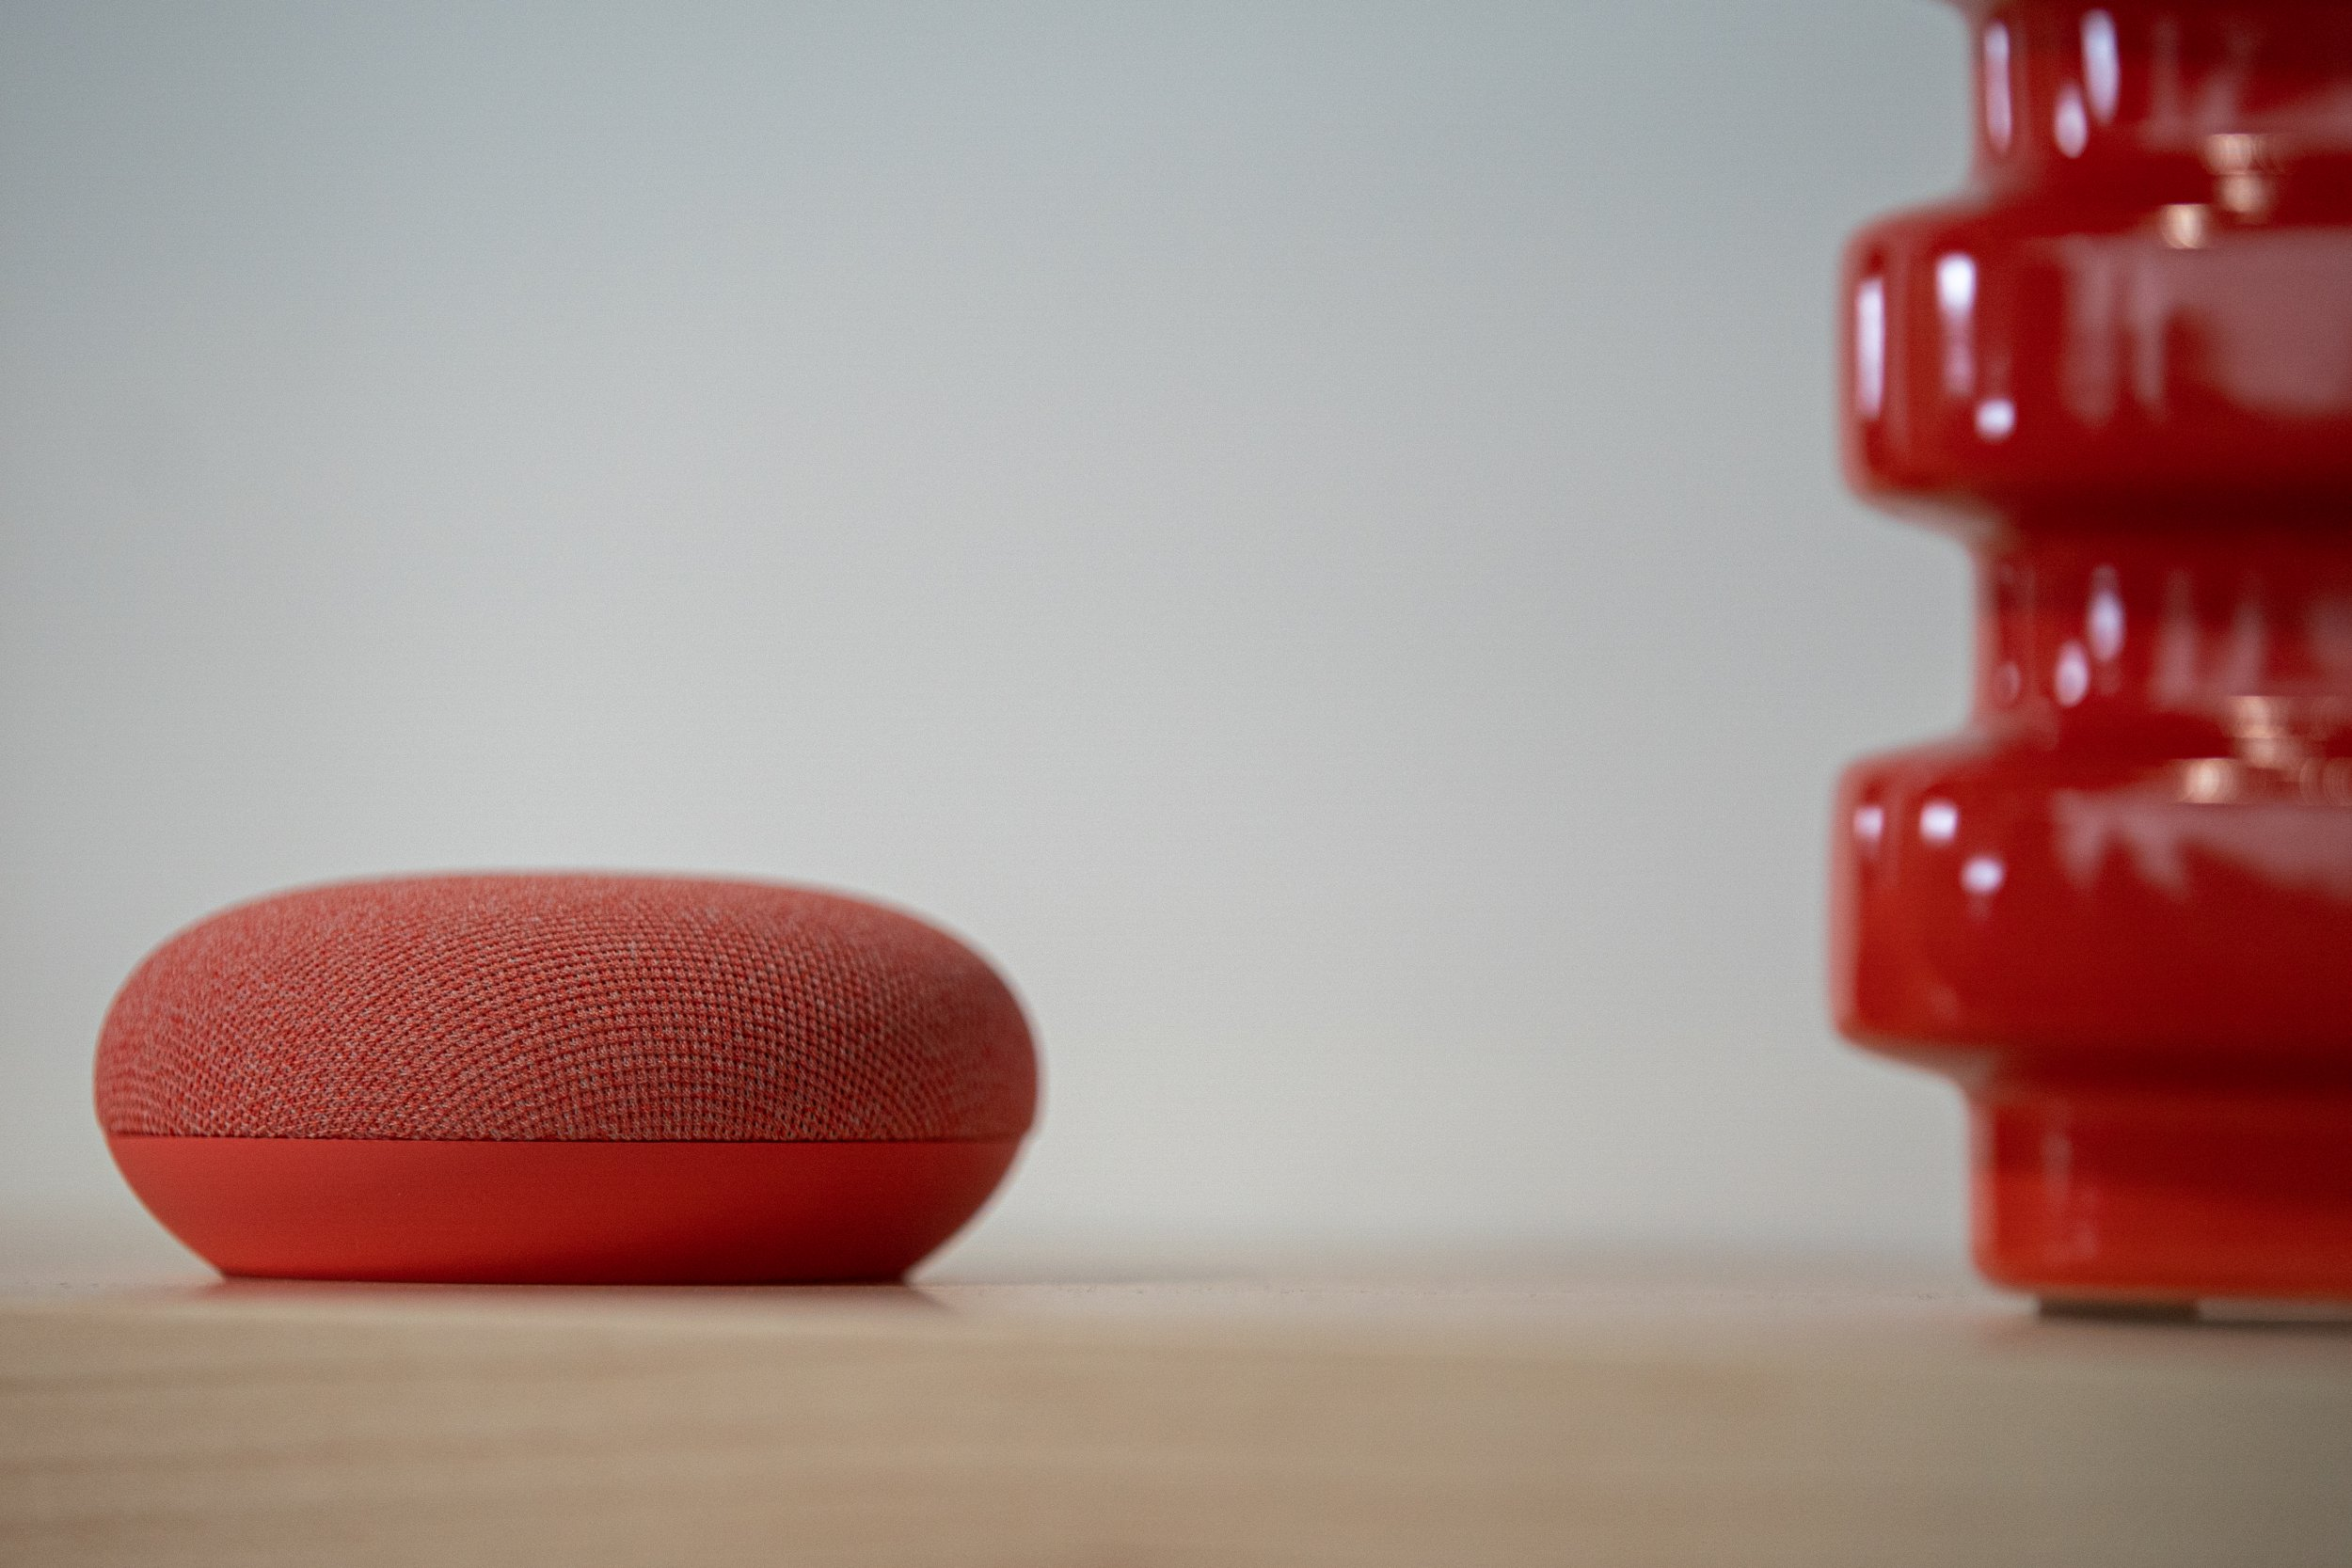 The Google Nest Mini speaker is displayed during the Made by Google event in New York, U.S., on Tuesday, Oct. 15, 2019. Google is going back to basics for its latest laptop: a standard clam-shell design that moves away from the previous foldable, tablet-style Pixelbook. Photographer: Jeenah Moon/Bloomberg via Getty Images